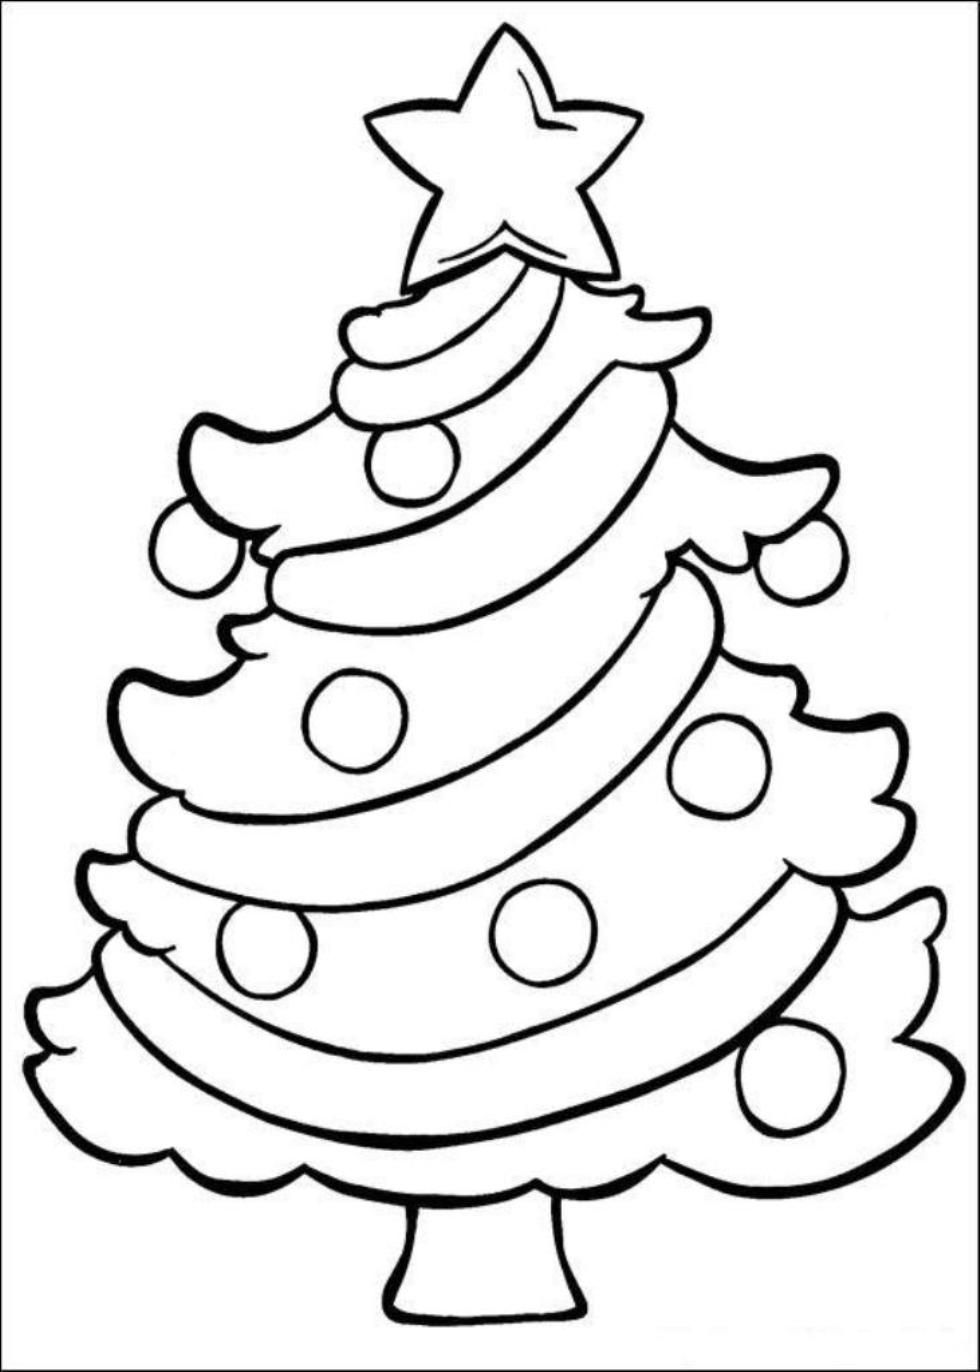 Christmas Tree Coloring Pages Free